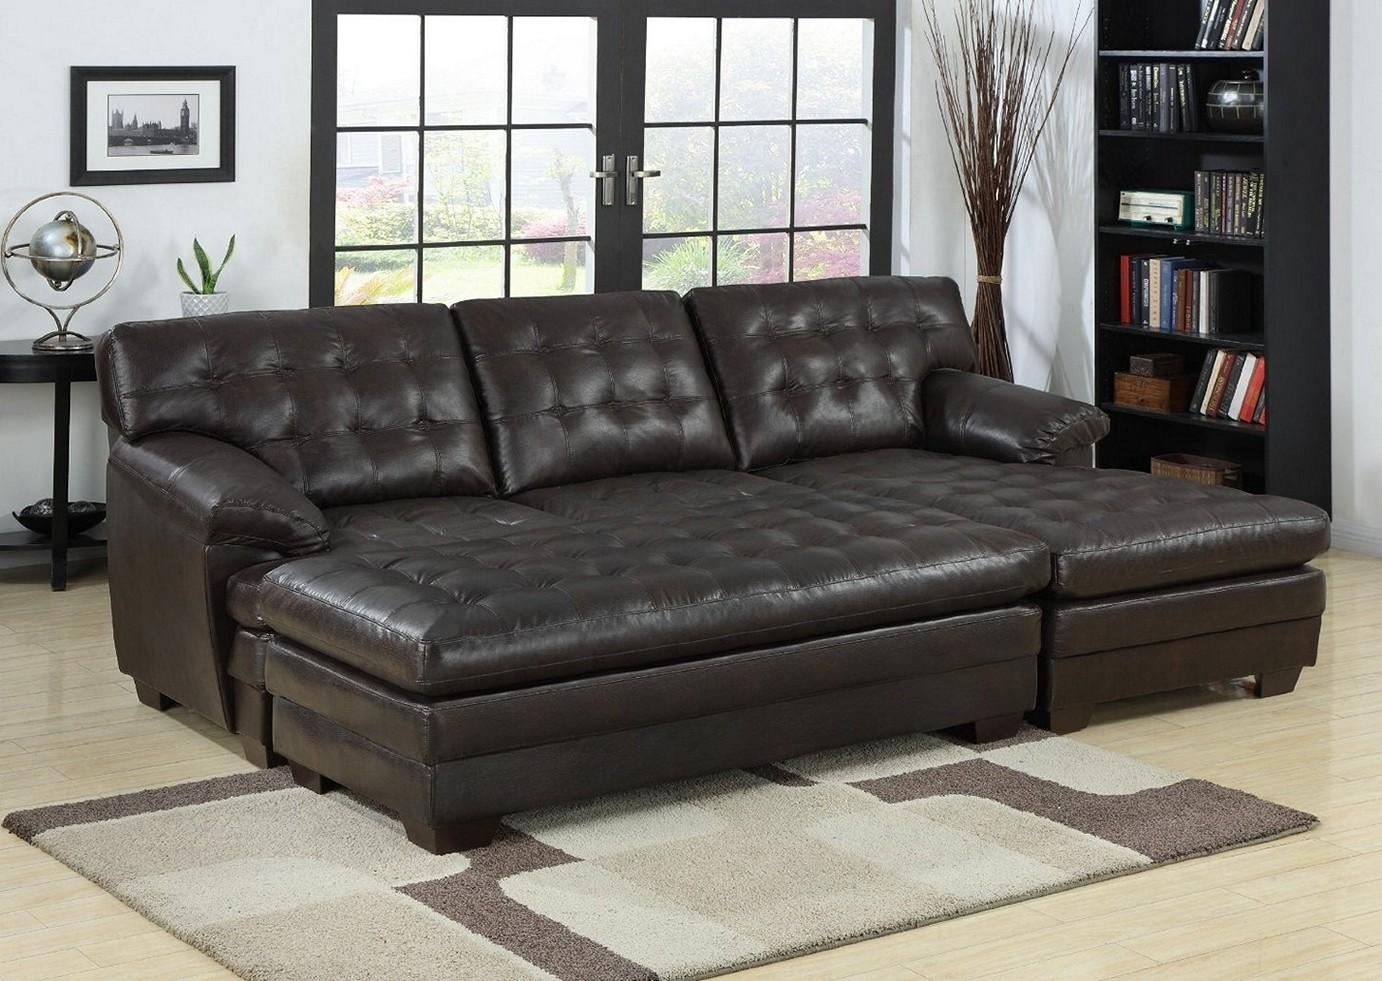 Sofas Center : Outstanding Chaise Lounge Sofa Pictures Ideas Beds Throughout Sofa Beds With Chaise Lounge (View 3 of 20)